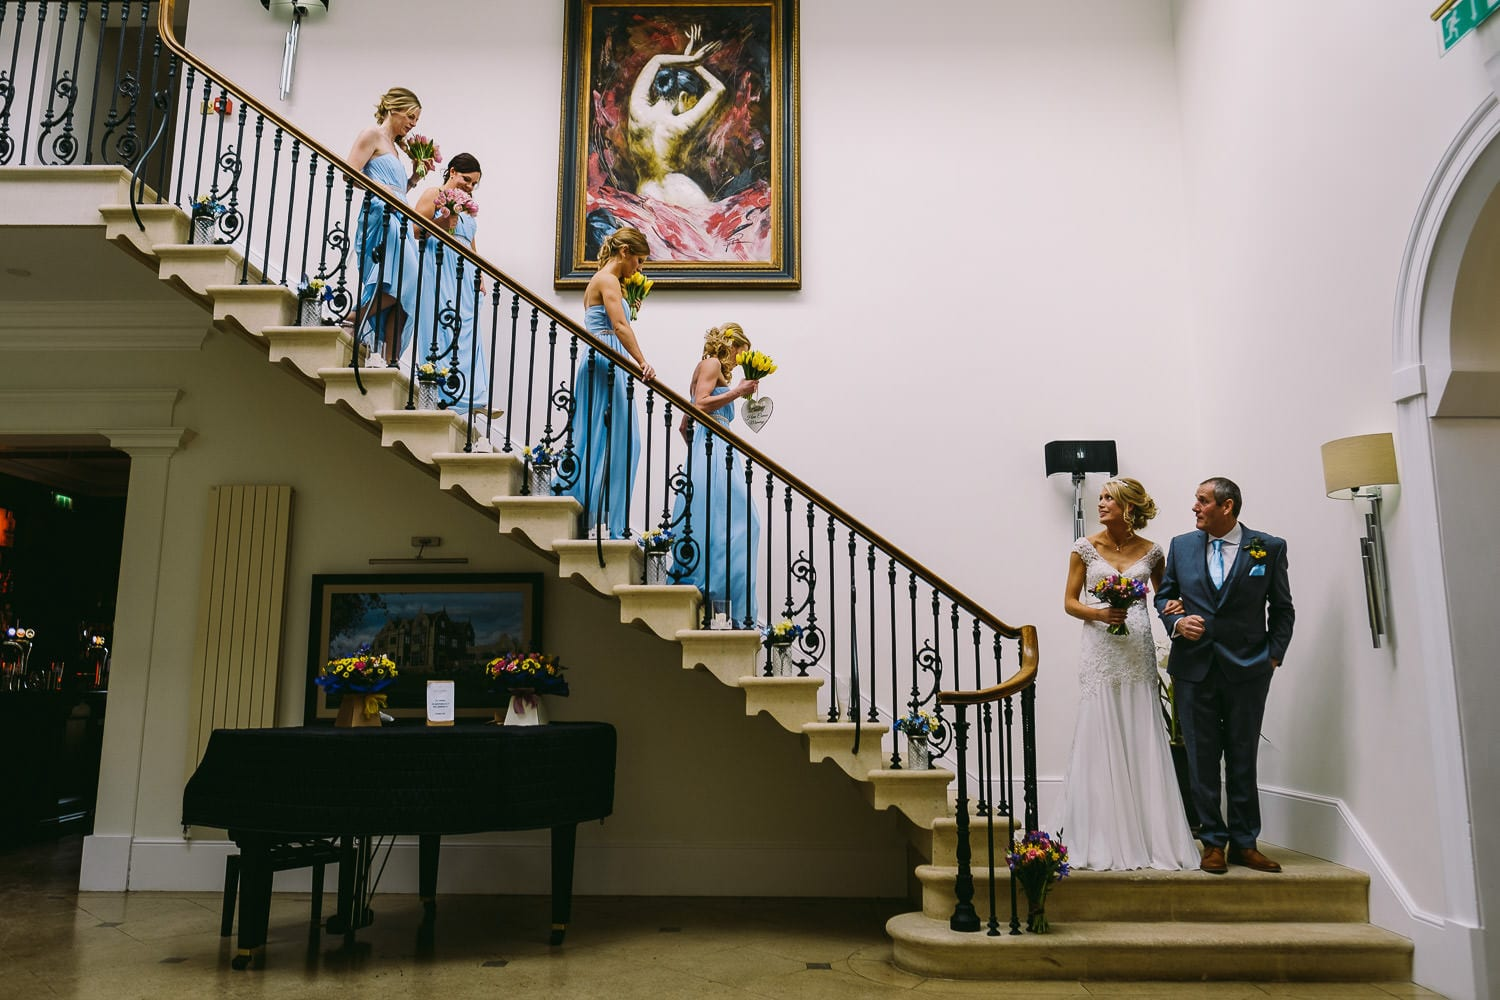 Bride and bridesmaids come down the stairs